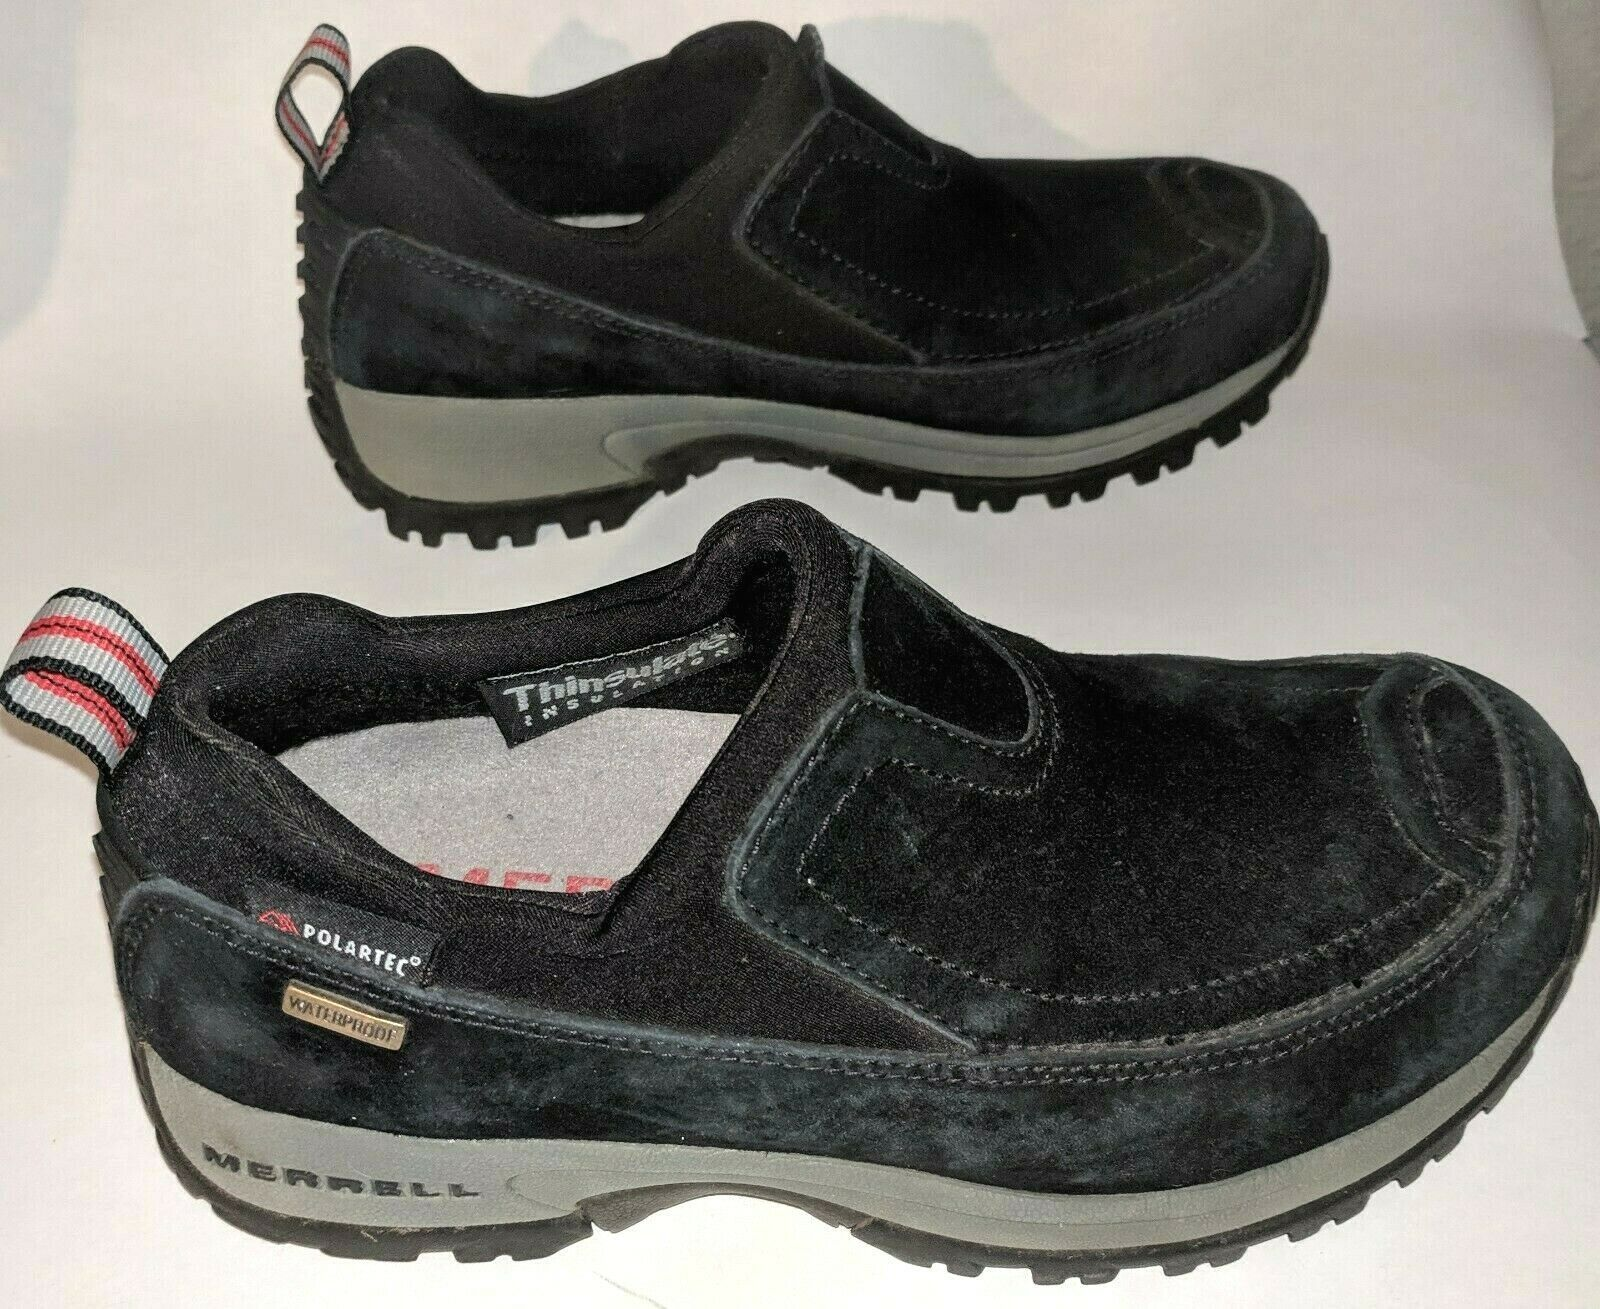 Merrell Womens 6 Winter Shoes Slip On Polar Moc Waterproof Insulated Black Suede